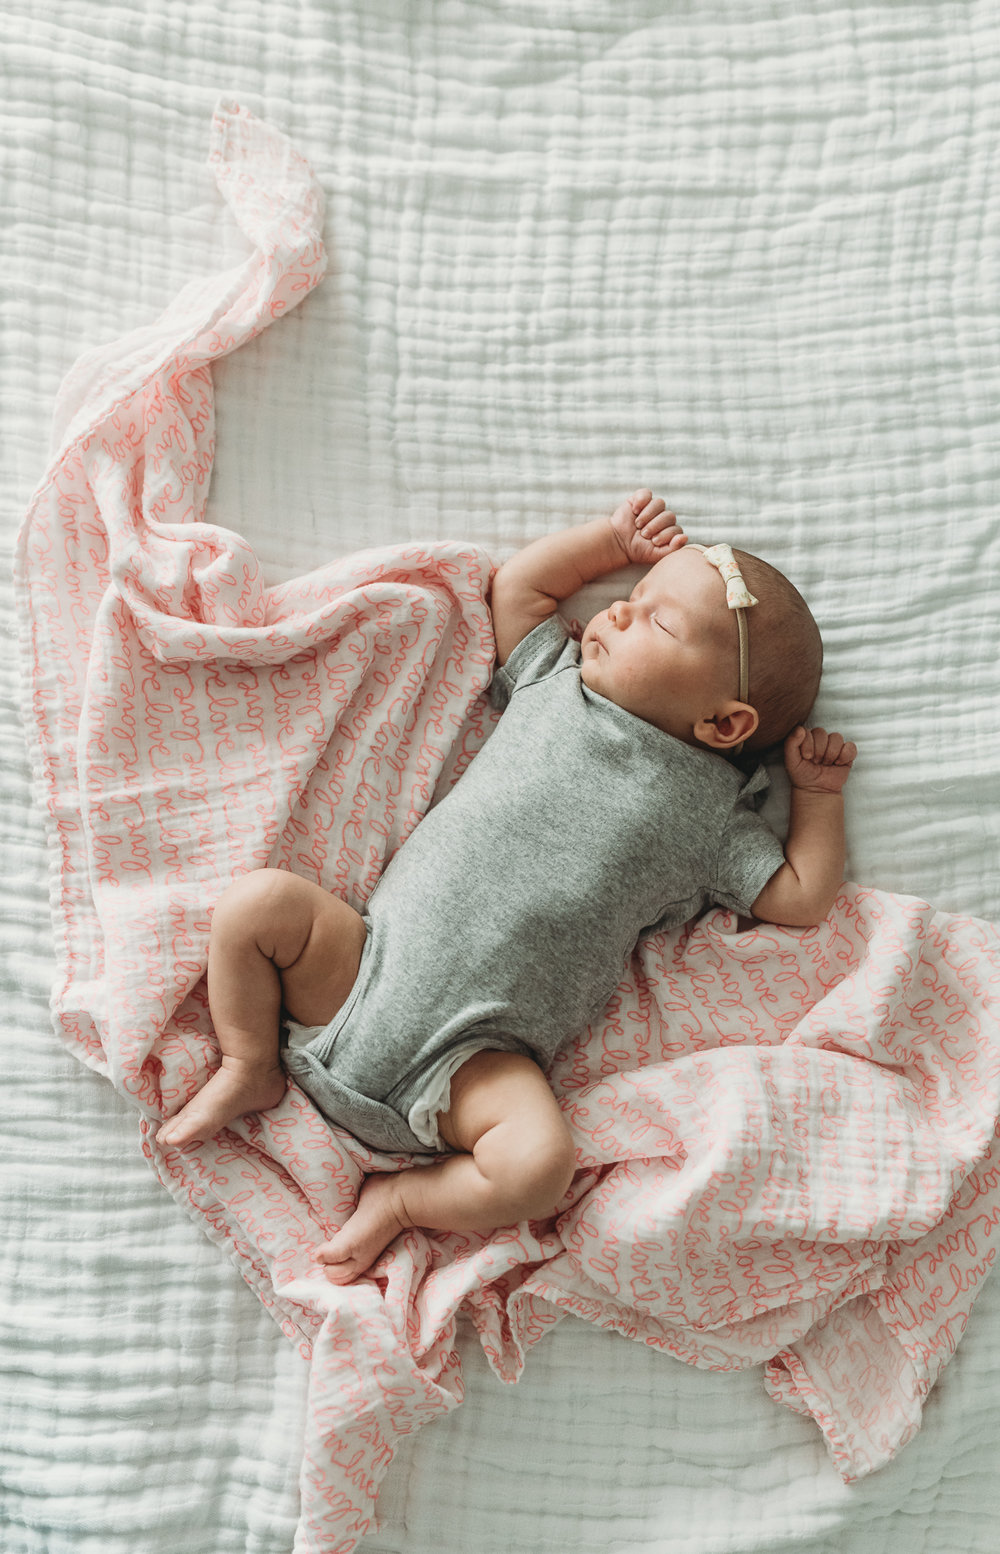 austin-lifestyle-newborn-photographer-8058.jpg